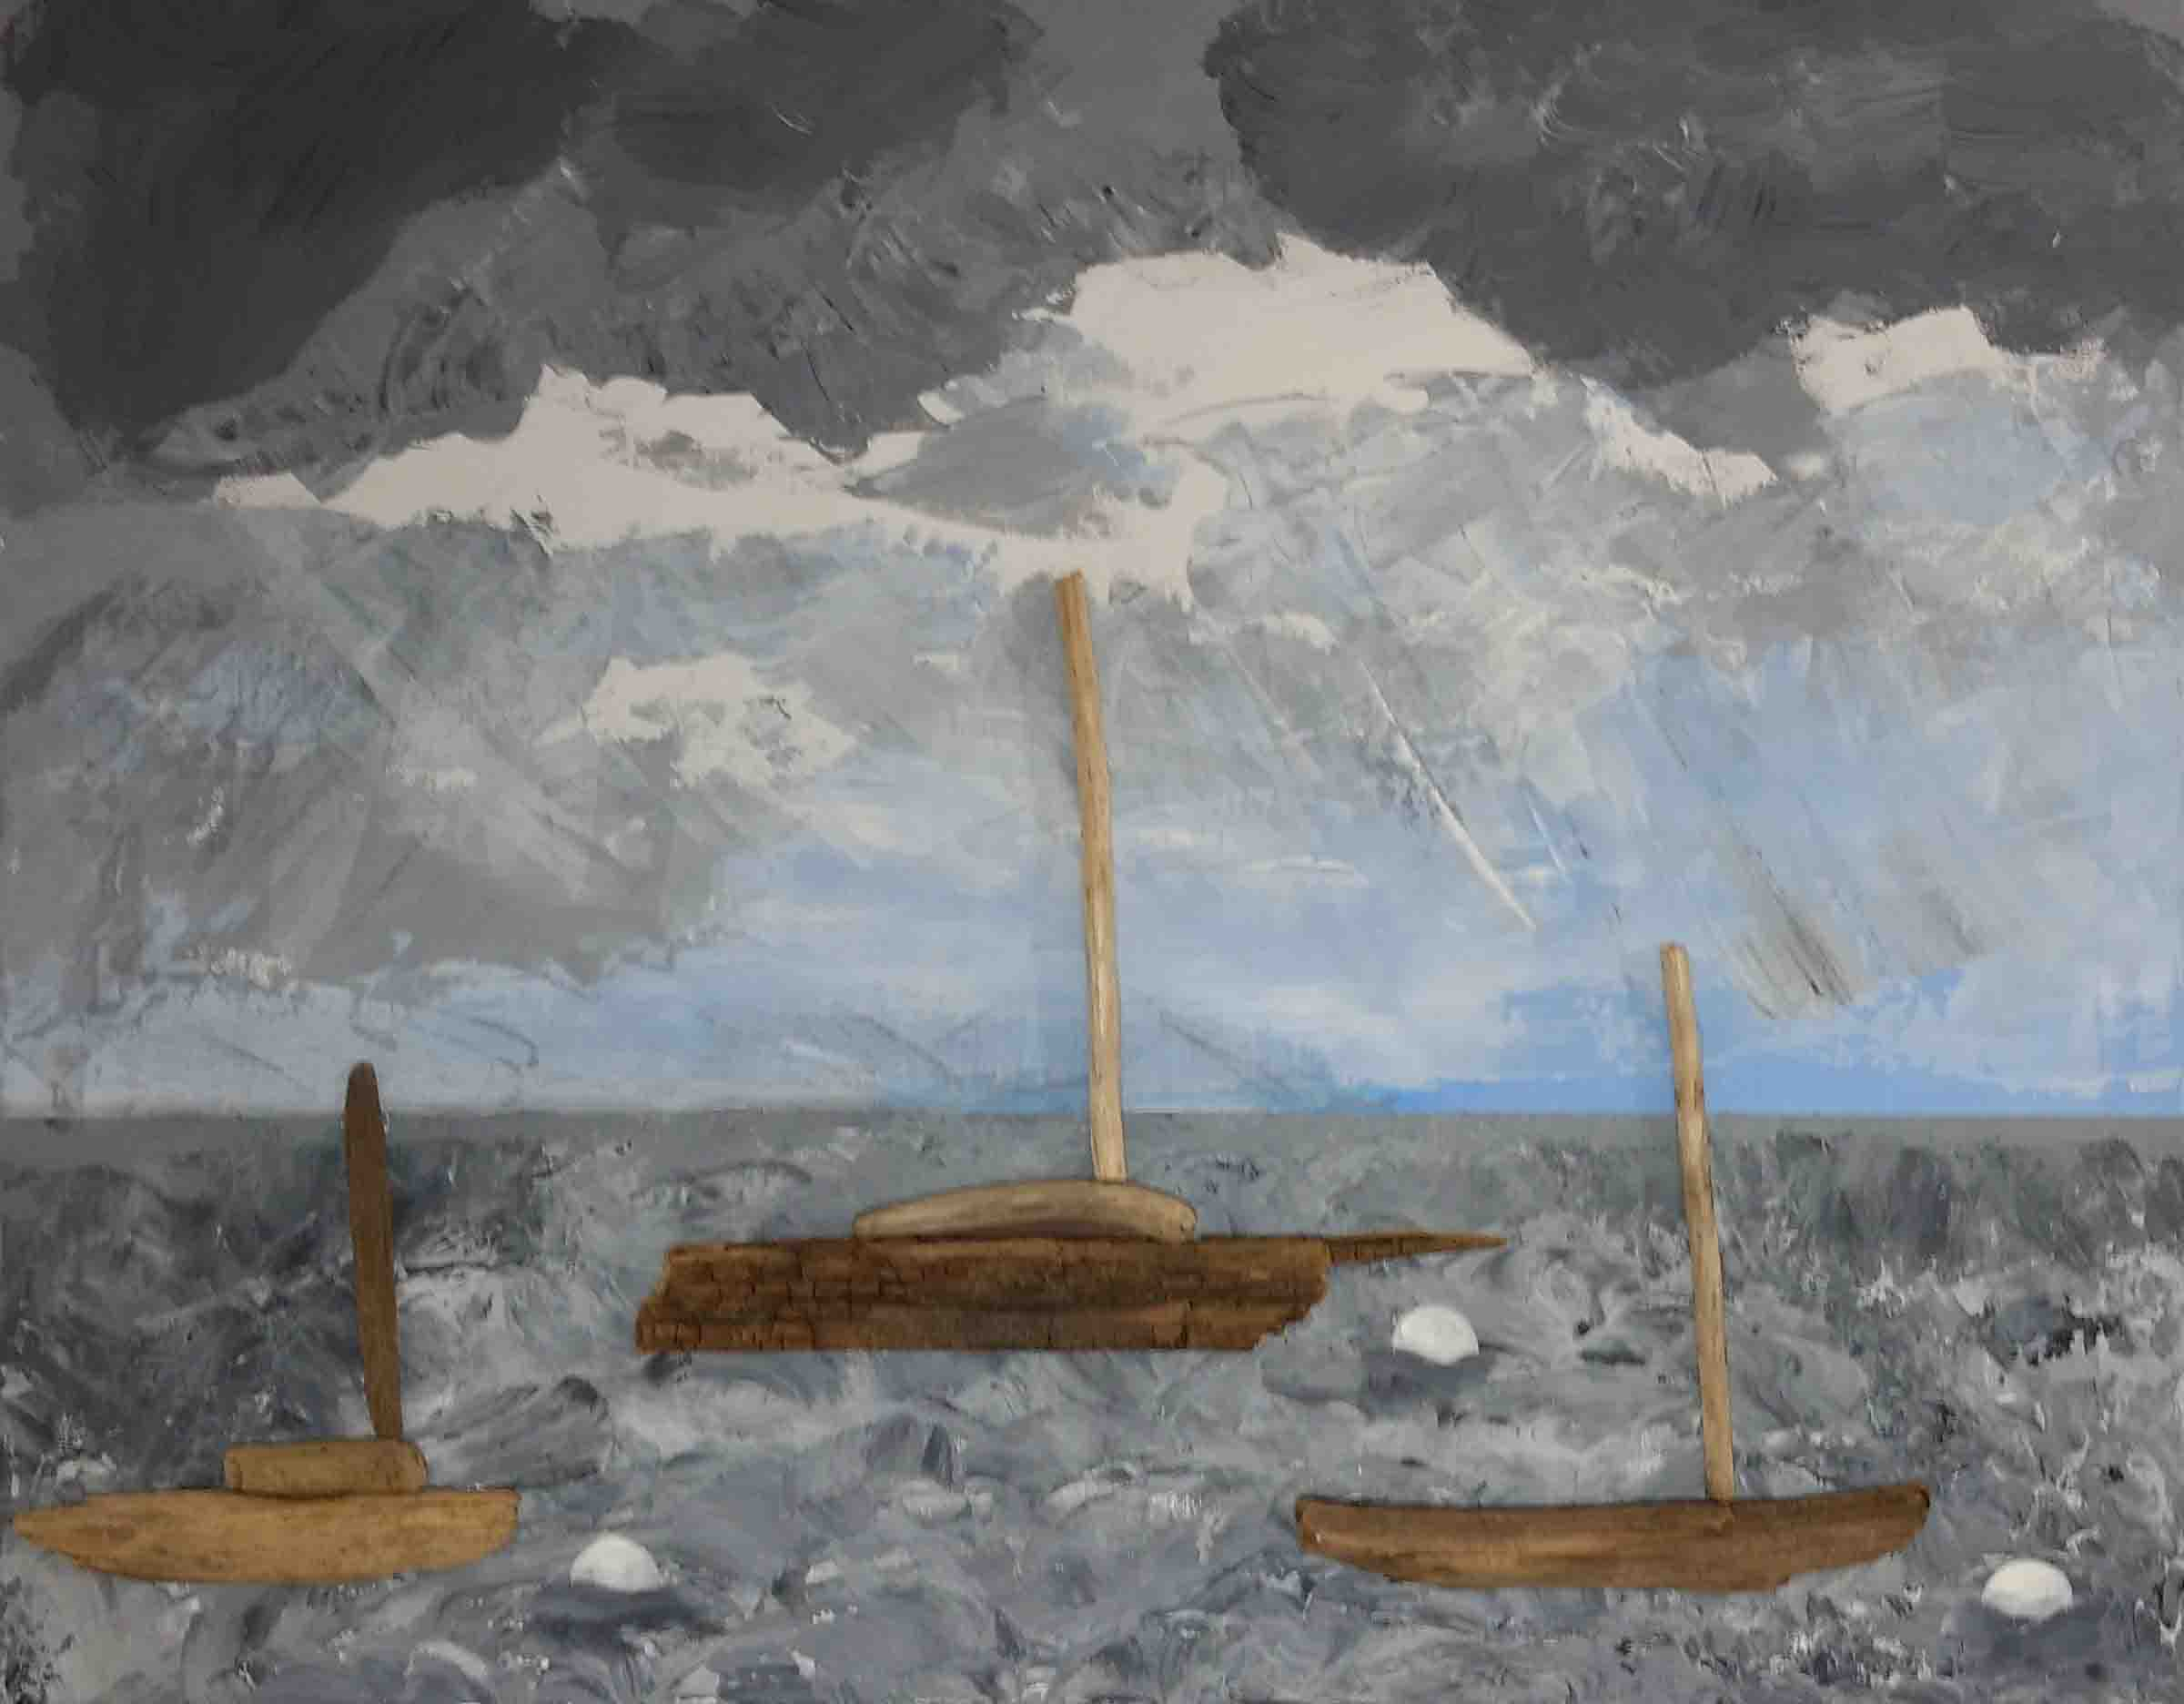 17_04_24_Waiting_for_the_Sun_from_The_Shells_and_Driftwood_Retasked_collection_by_Luke_McEwen